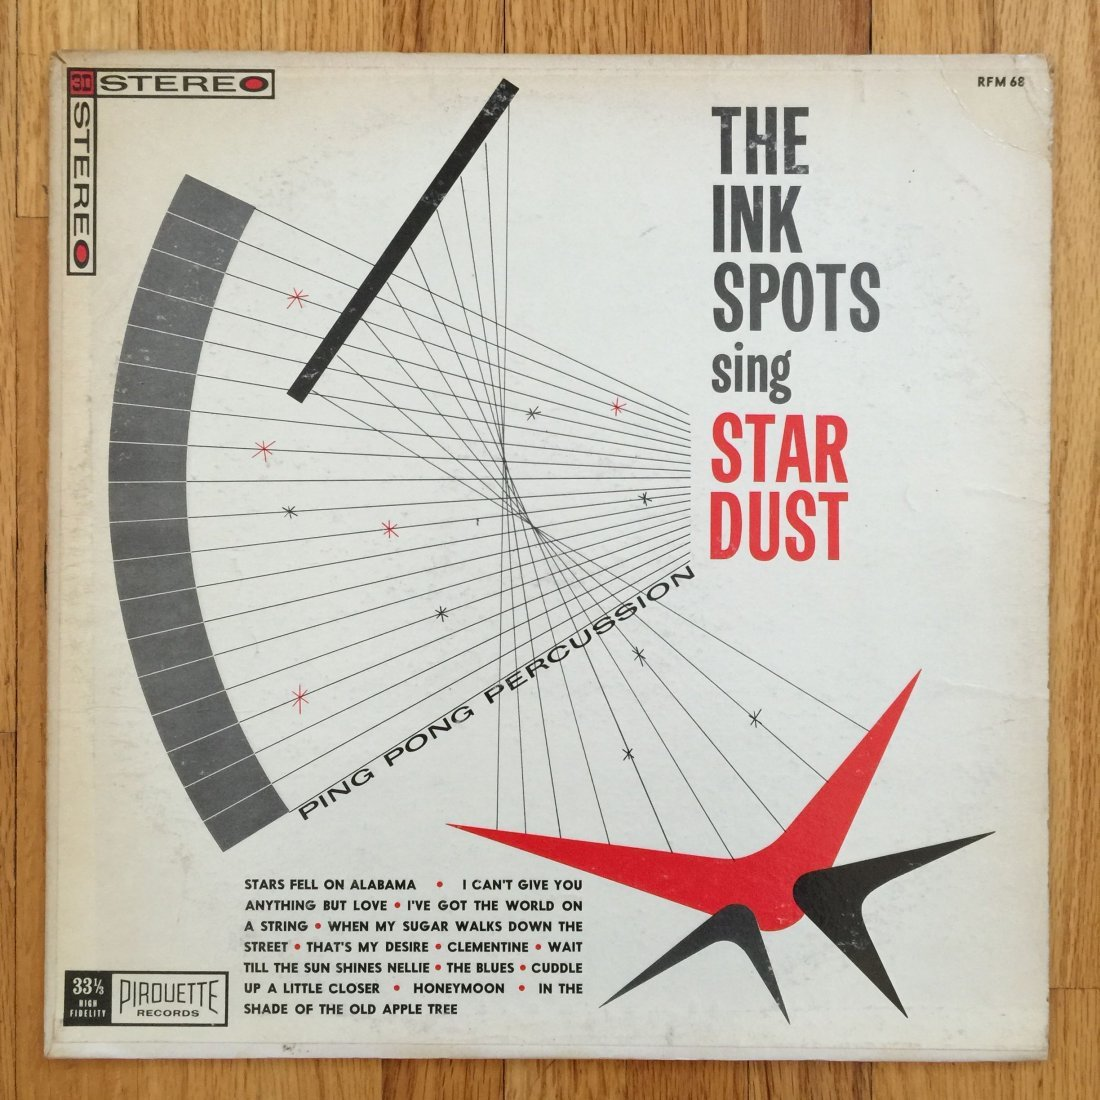 THE INK SPOTS SING STARDUST - 33LP RECORD